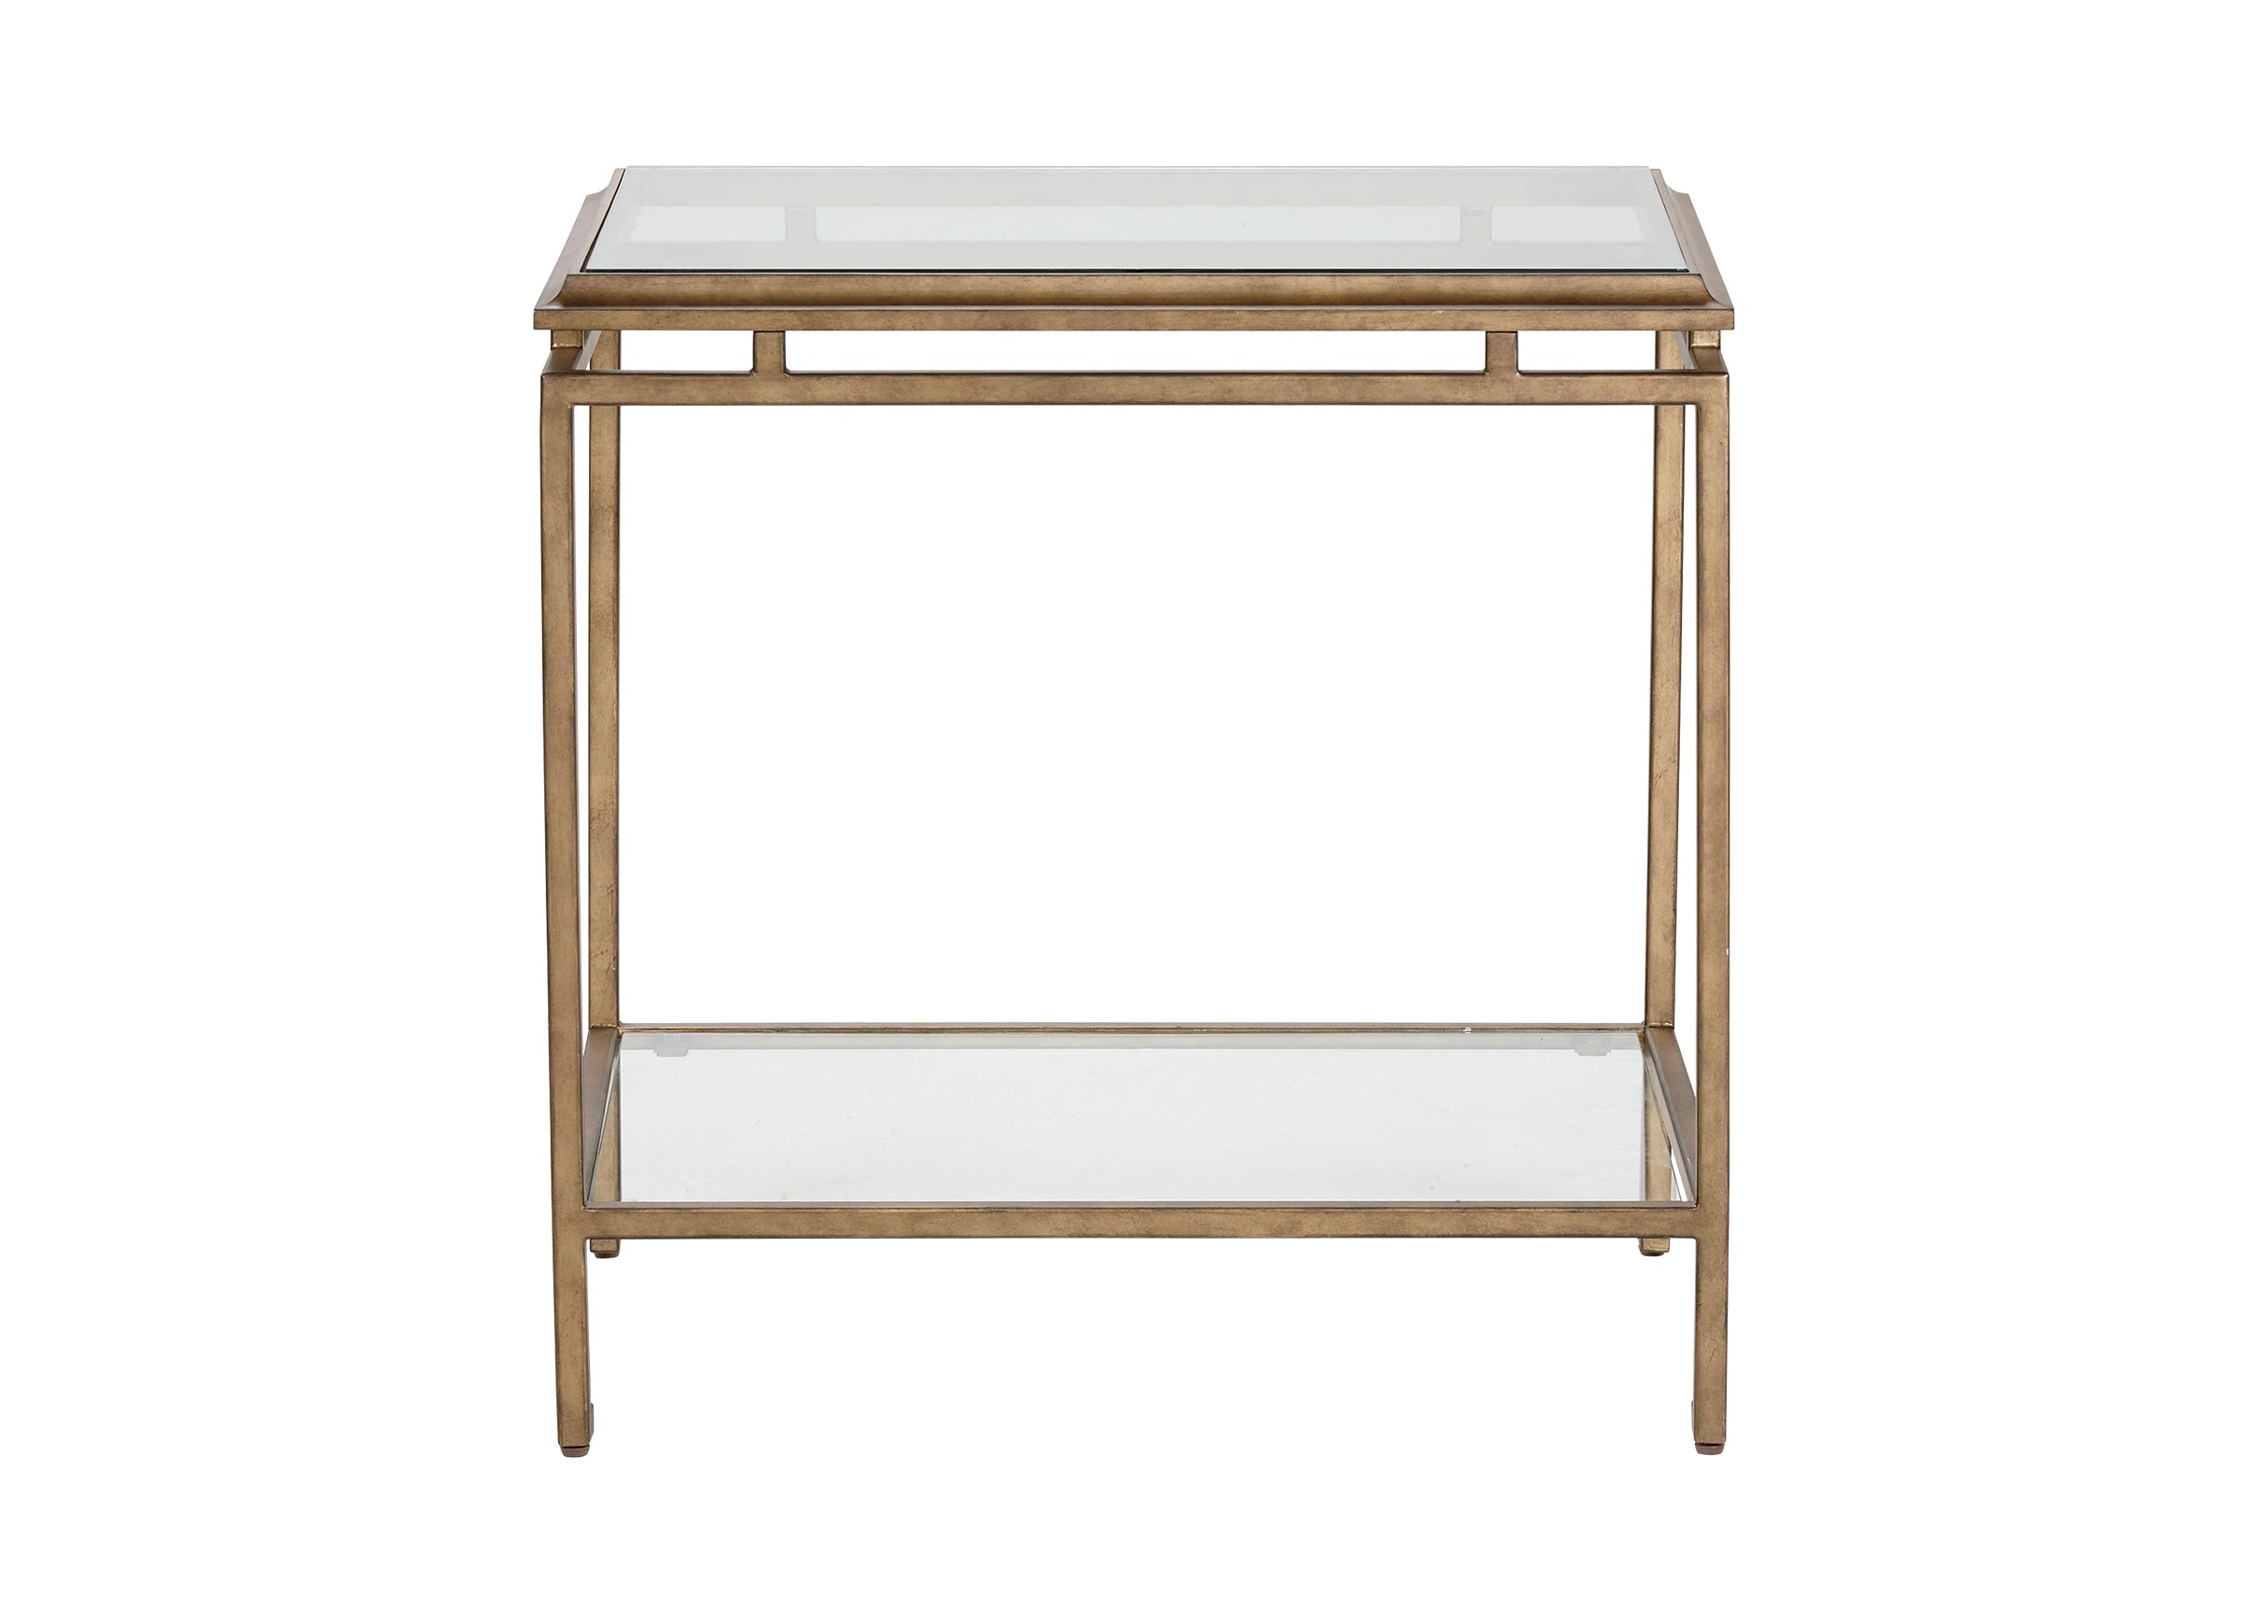 side tables accent ethan allen clearance quick ship threshold mirrored table target dresser drawers affordable dining sets pier coupon code unique patio furniture umbrella wedge